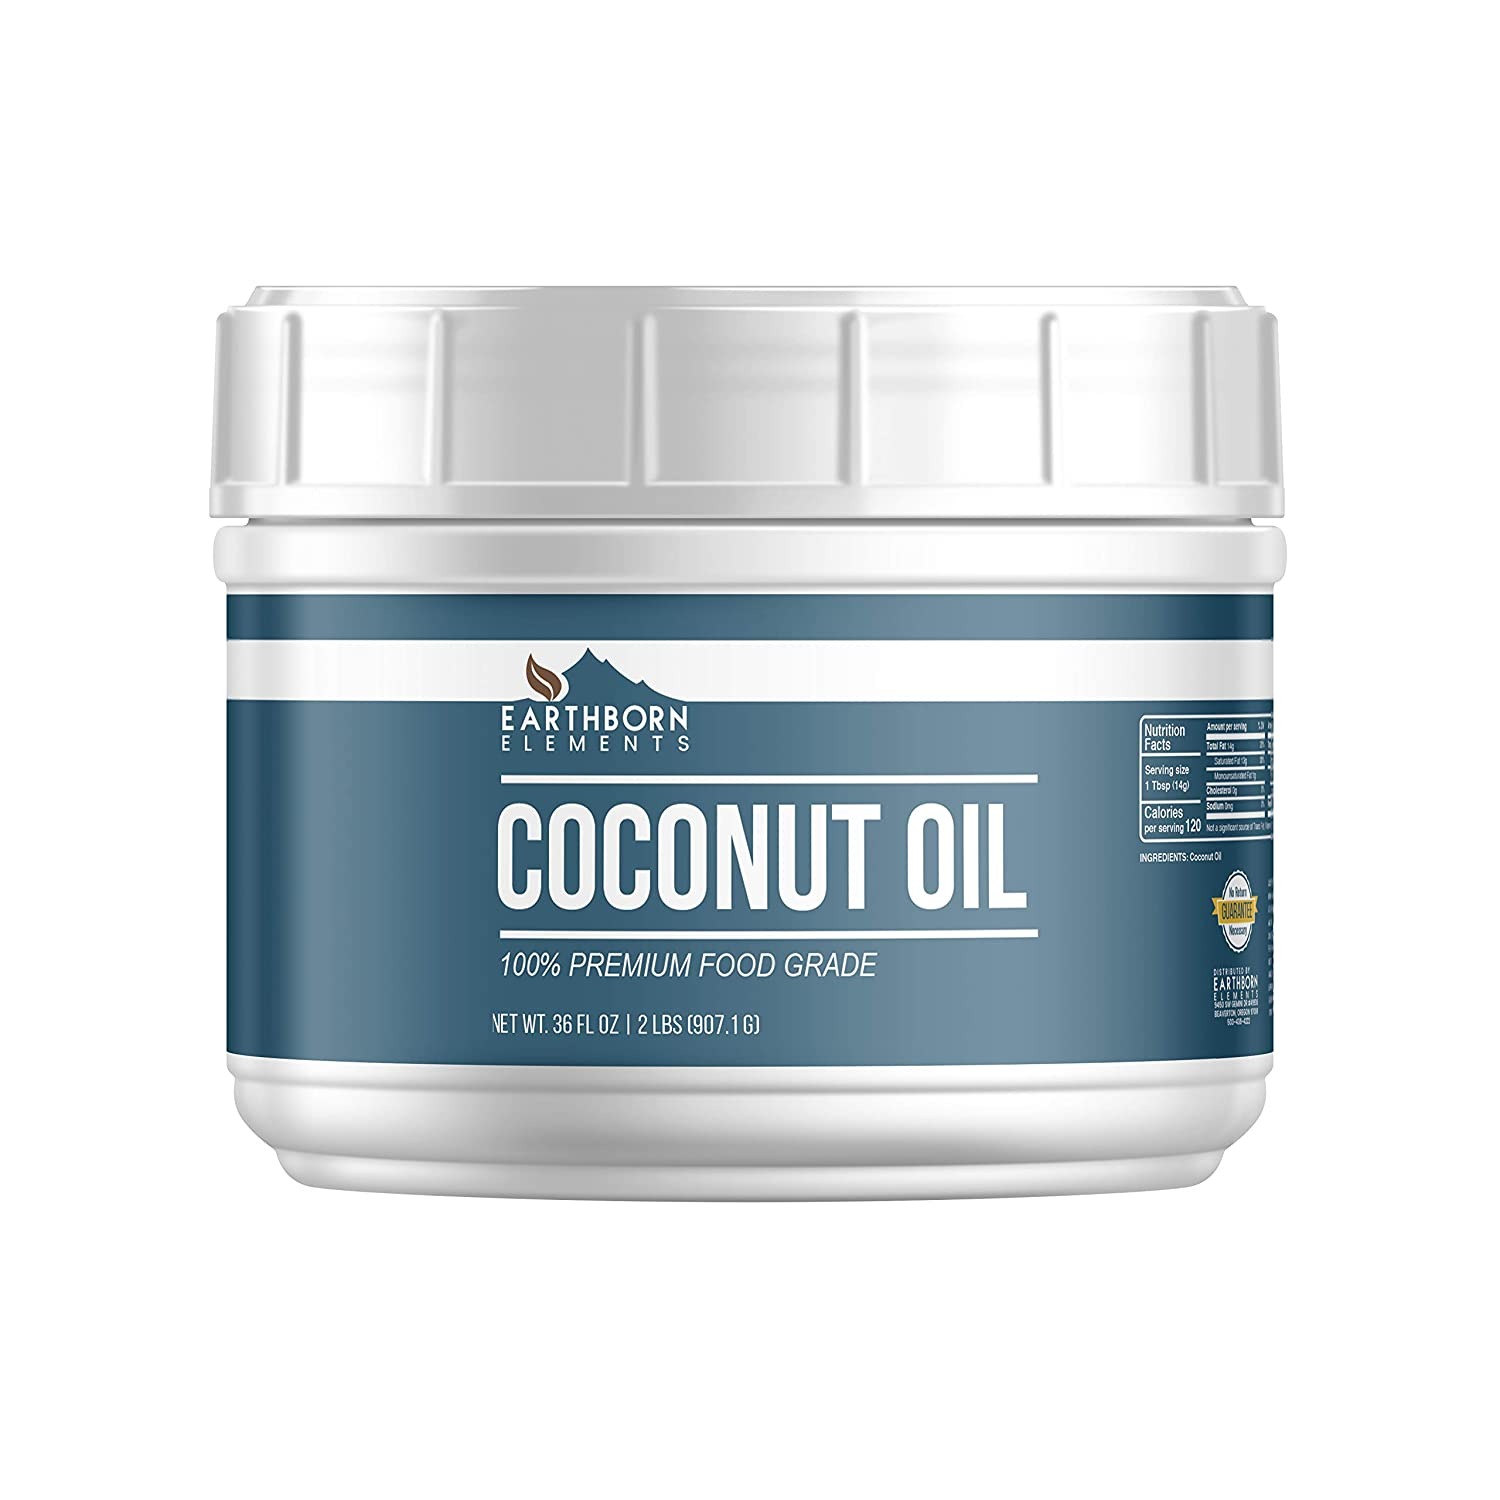 Coconut Oil (36 oz) 100% Pure for Skin, Hair, & Cooking, Refined, Filtered, Food Grade, Non-Hydrogenated, Flavorless & Scentless, Non-GMO, Resealable Tub by Earthborn Elements